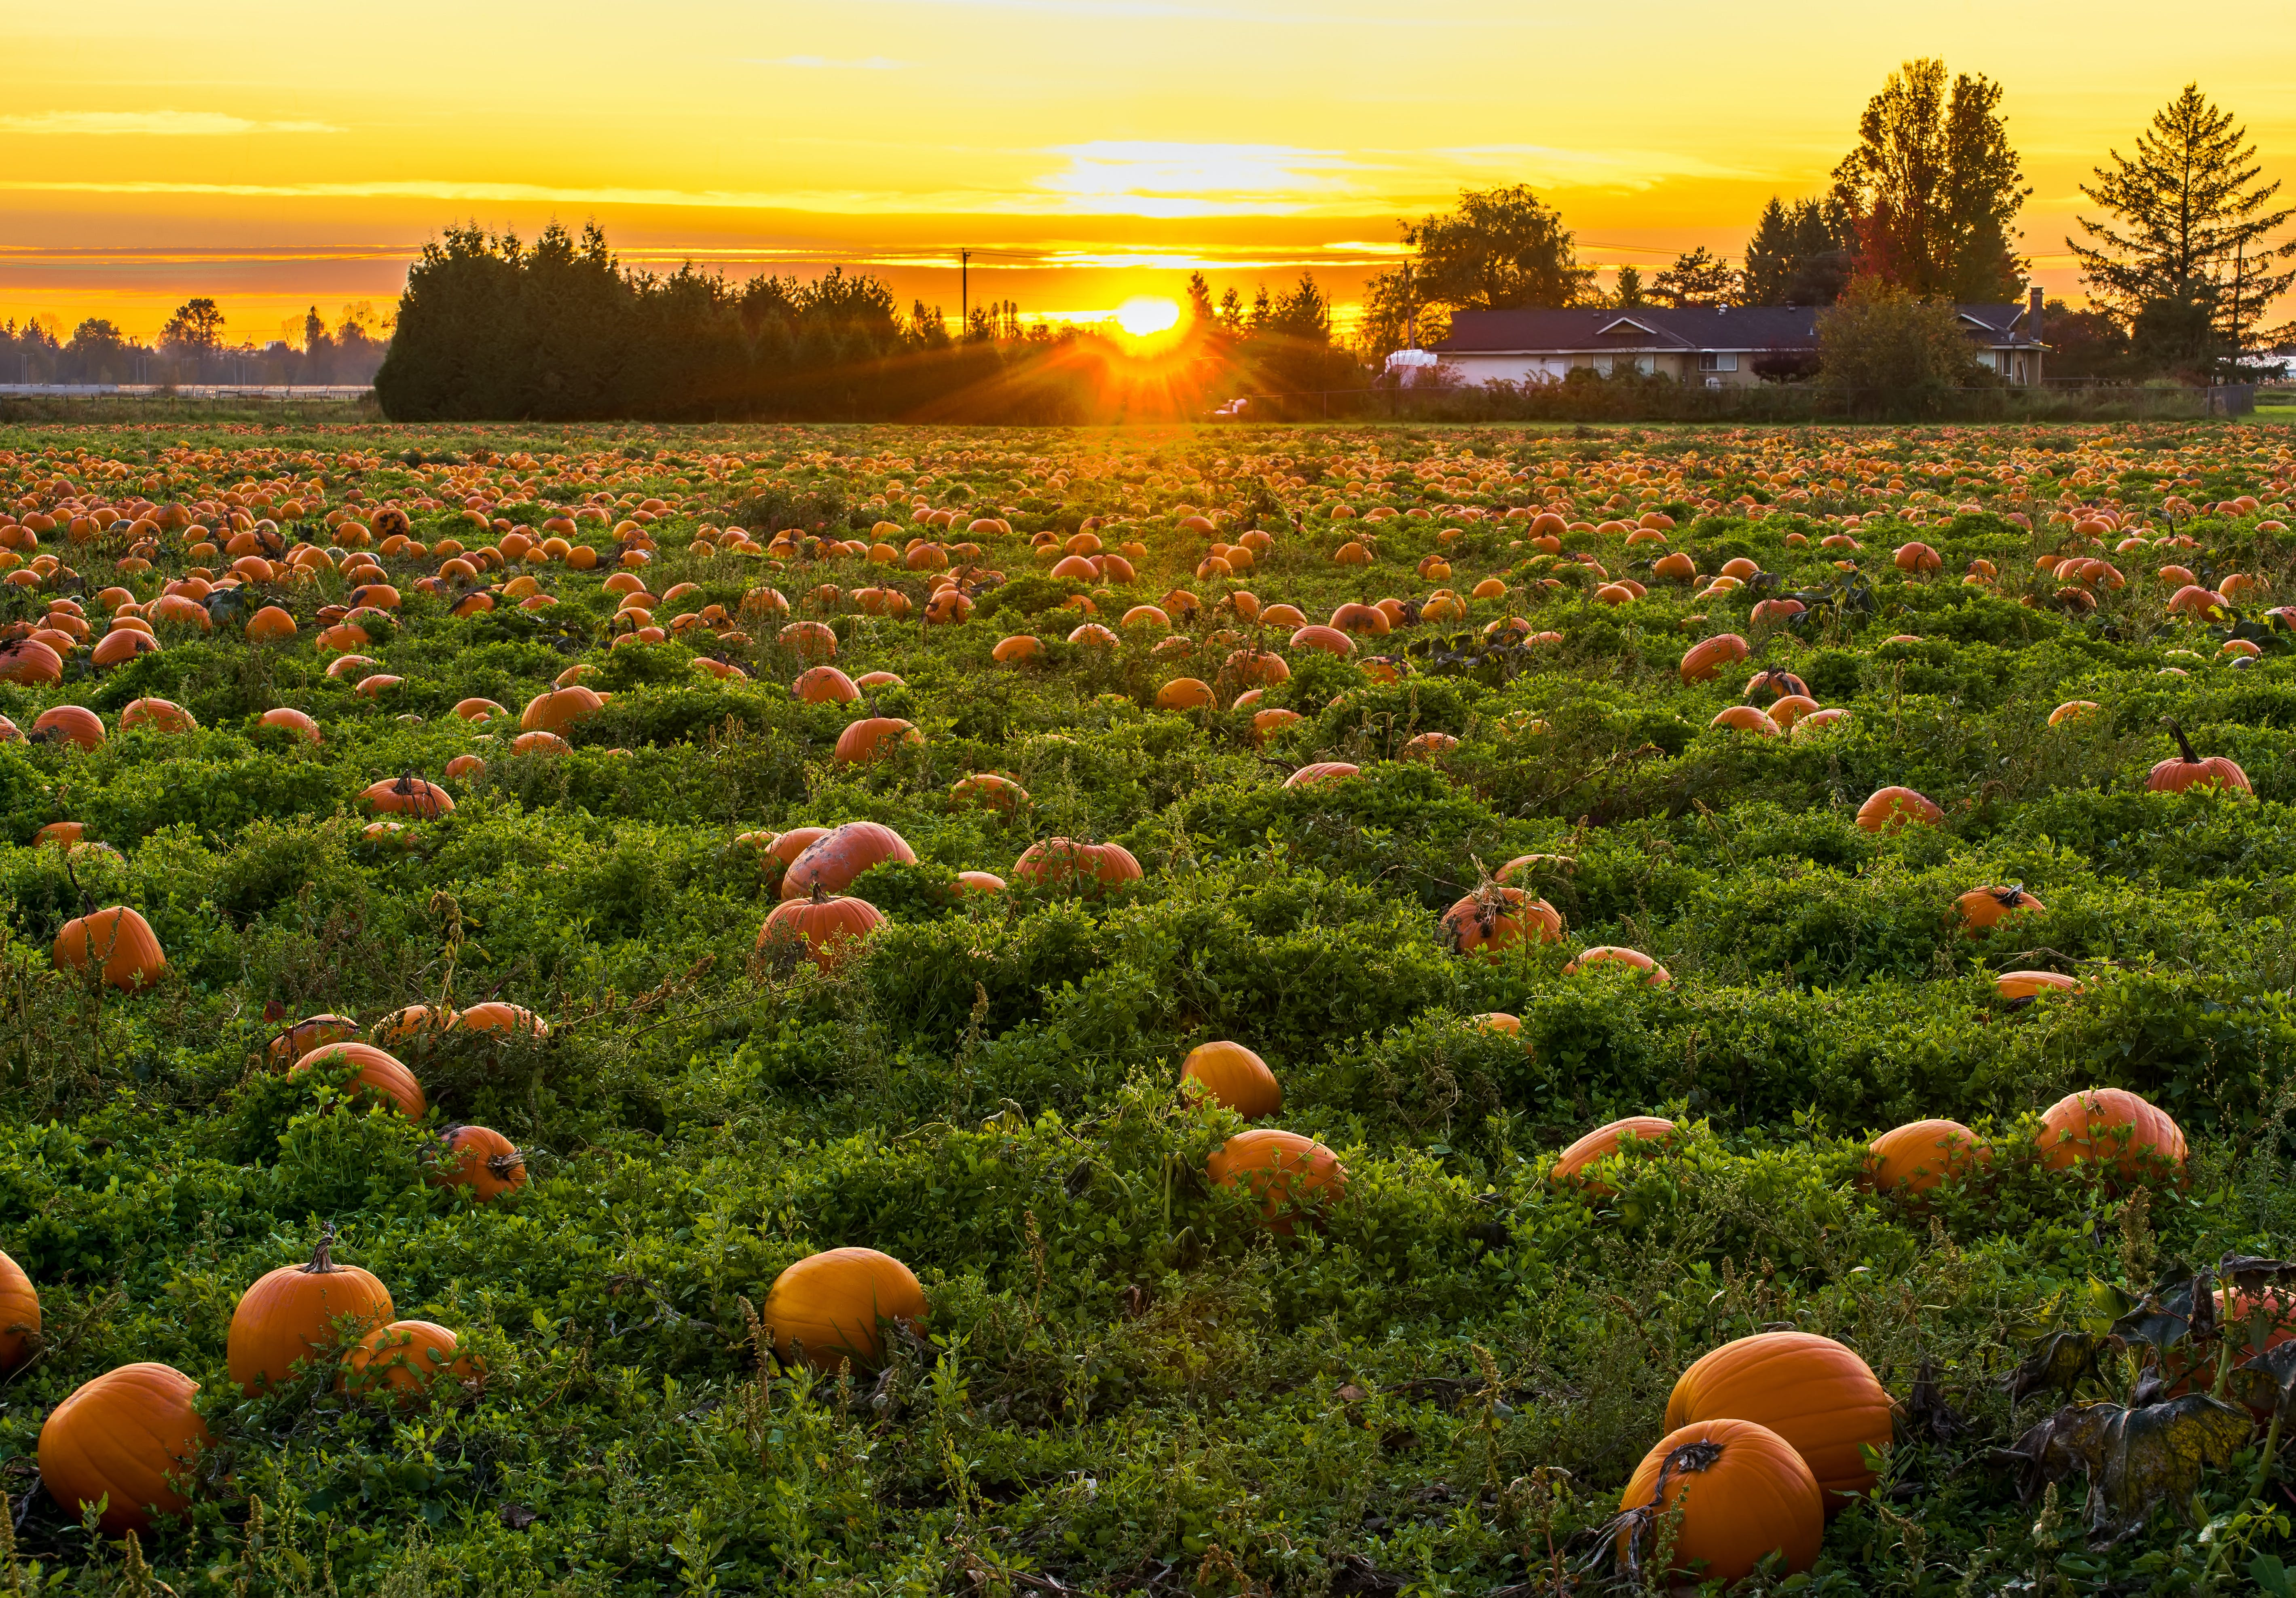 Photo of Field Full of Pumpkins